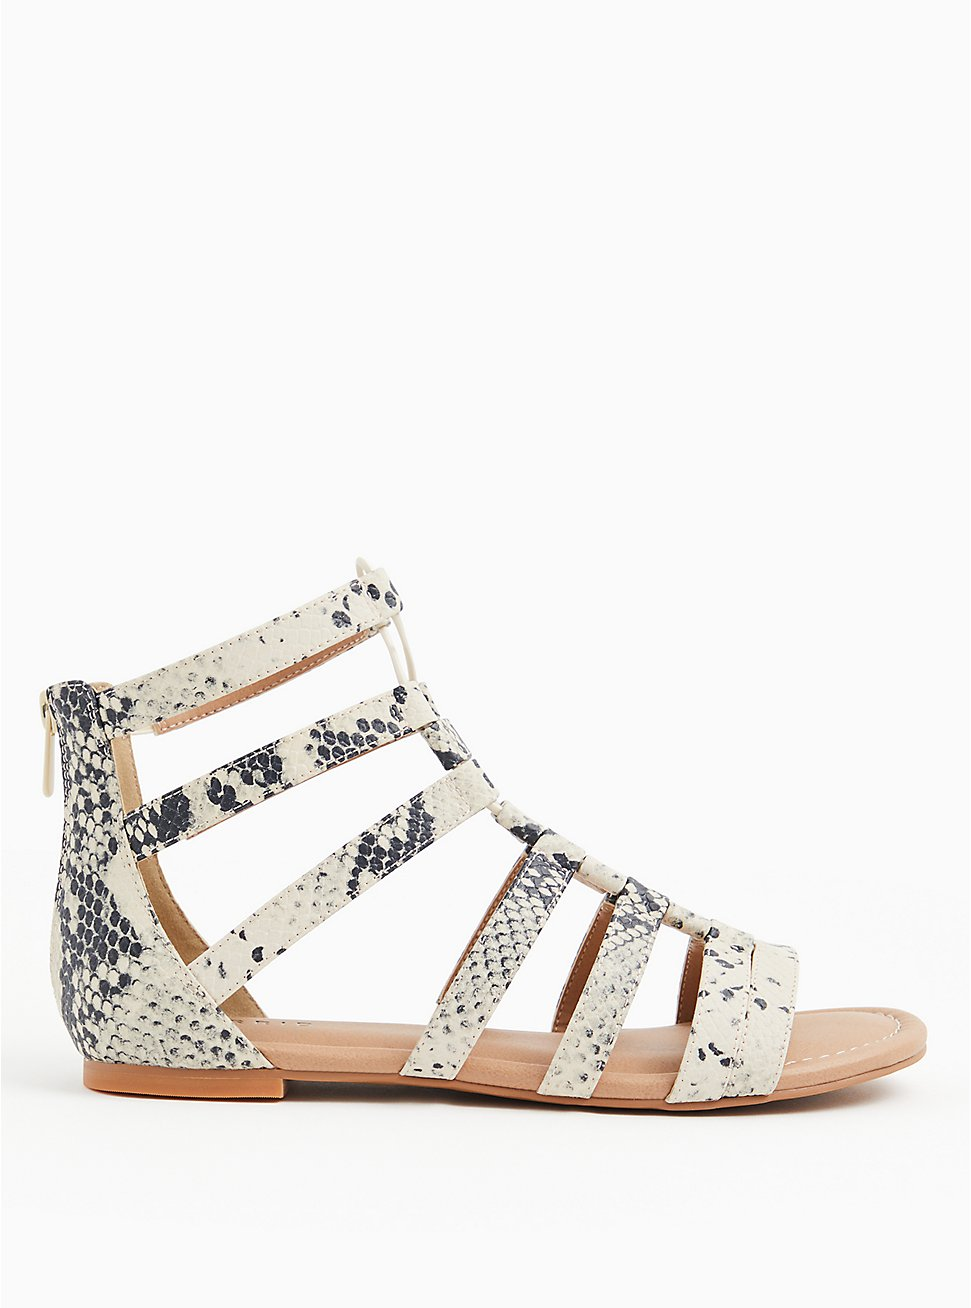 Snakeskin Print Faux Leather Gladiator Sandal (WW), ANIMAL, hi-res